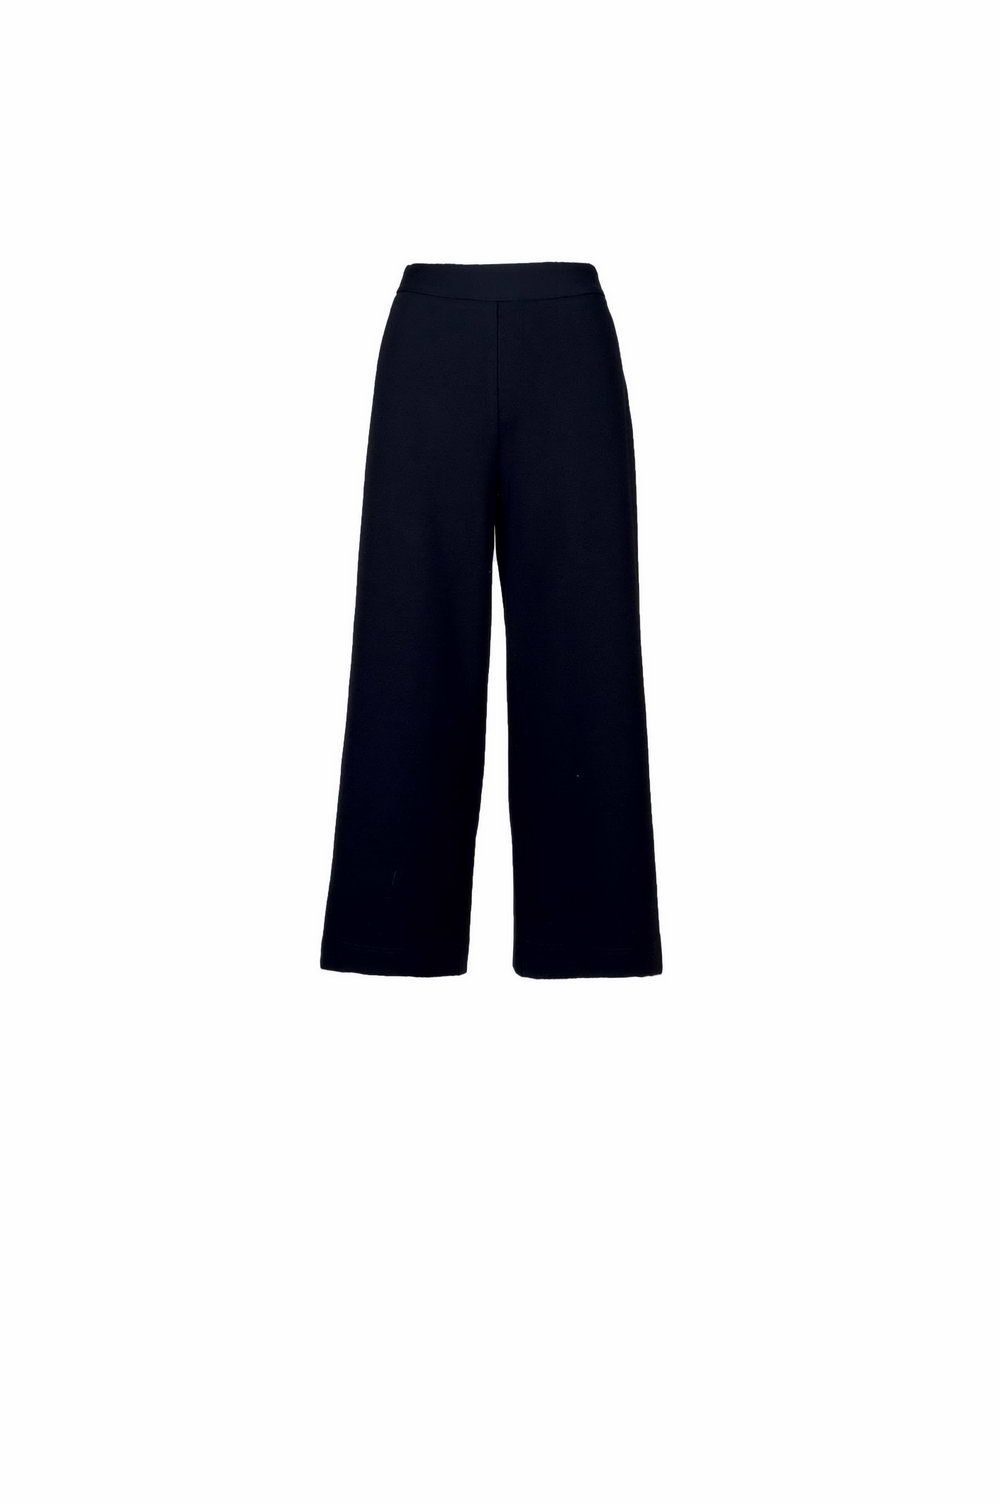 AnonymeDesigners_P139FP140 - Trouses - PVP 117,30€_resize